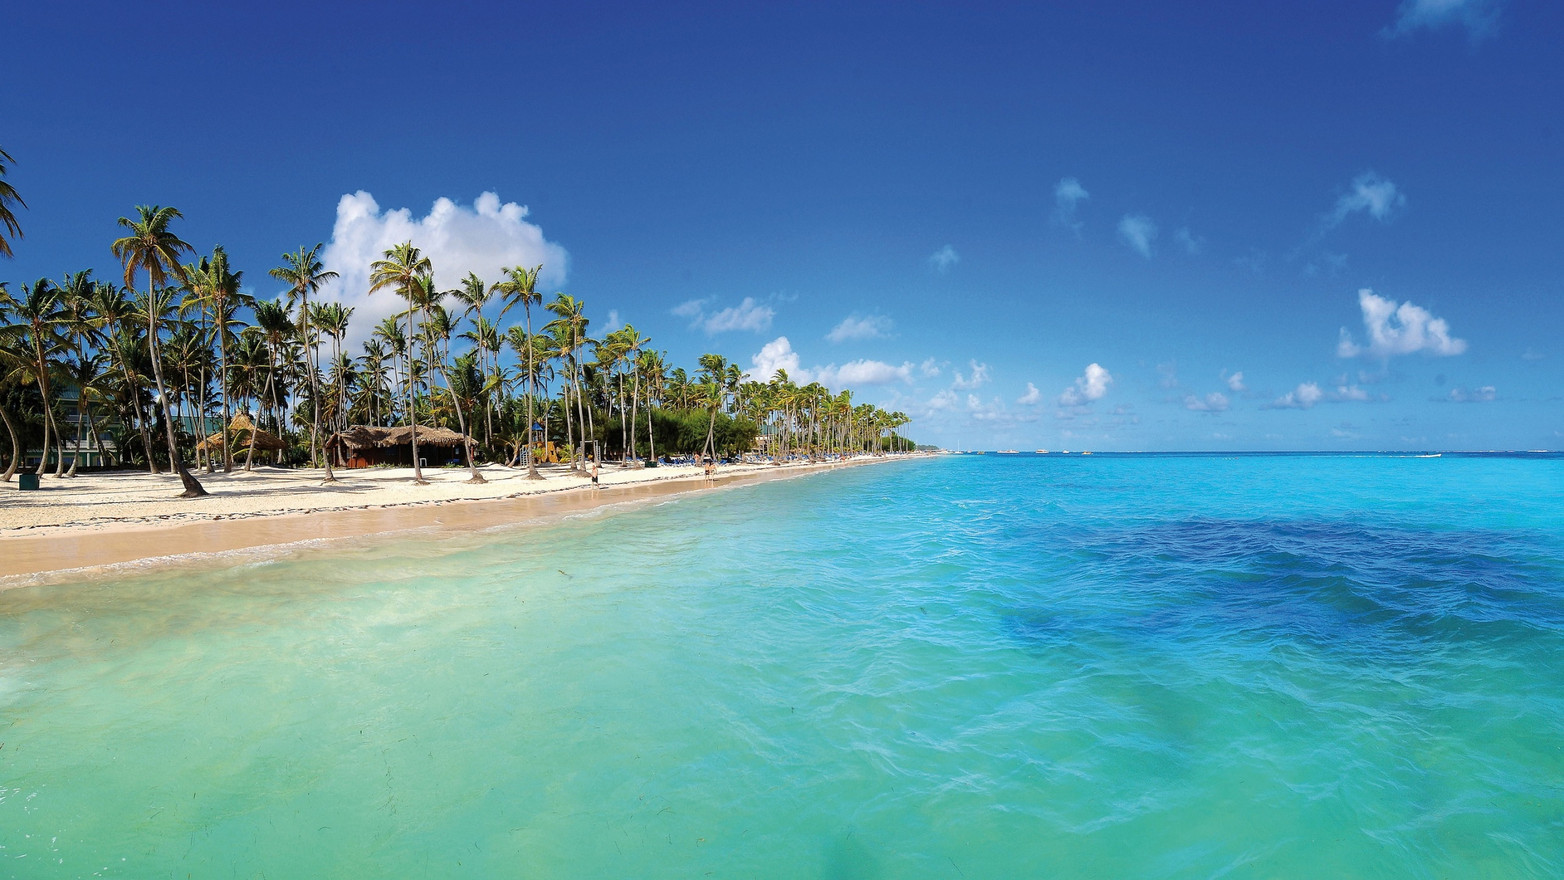 Punta-Cana-Beach-Wallpaper.jpg